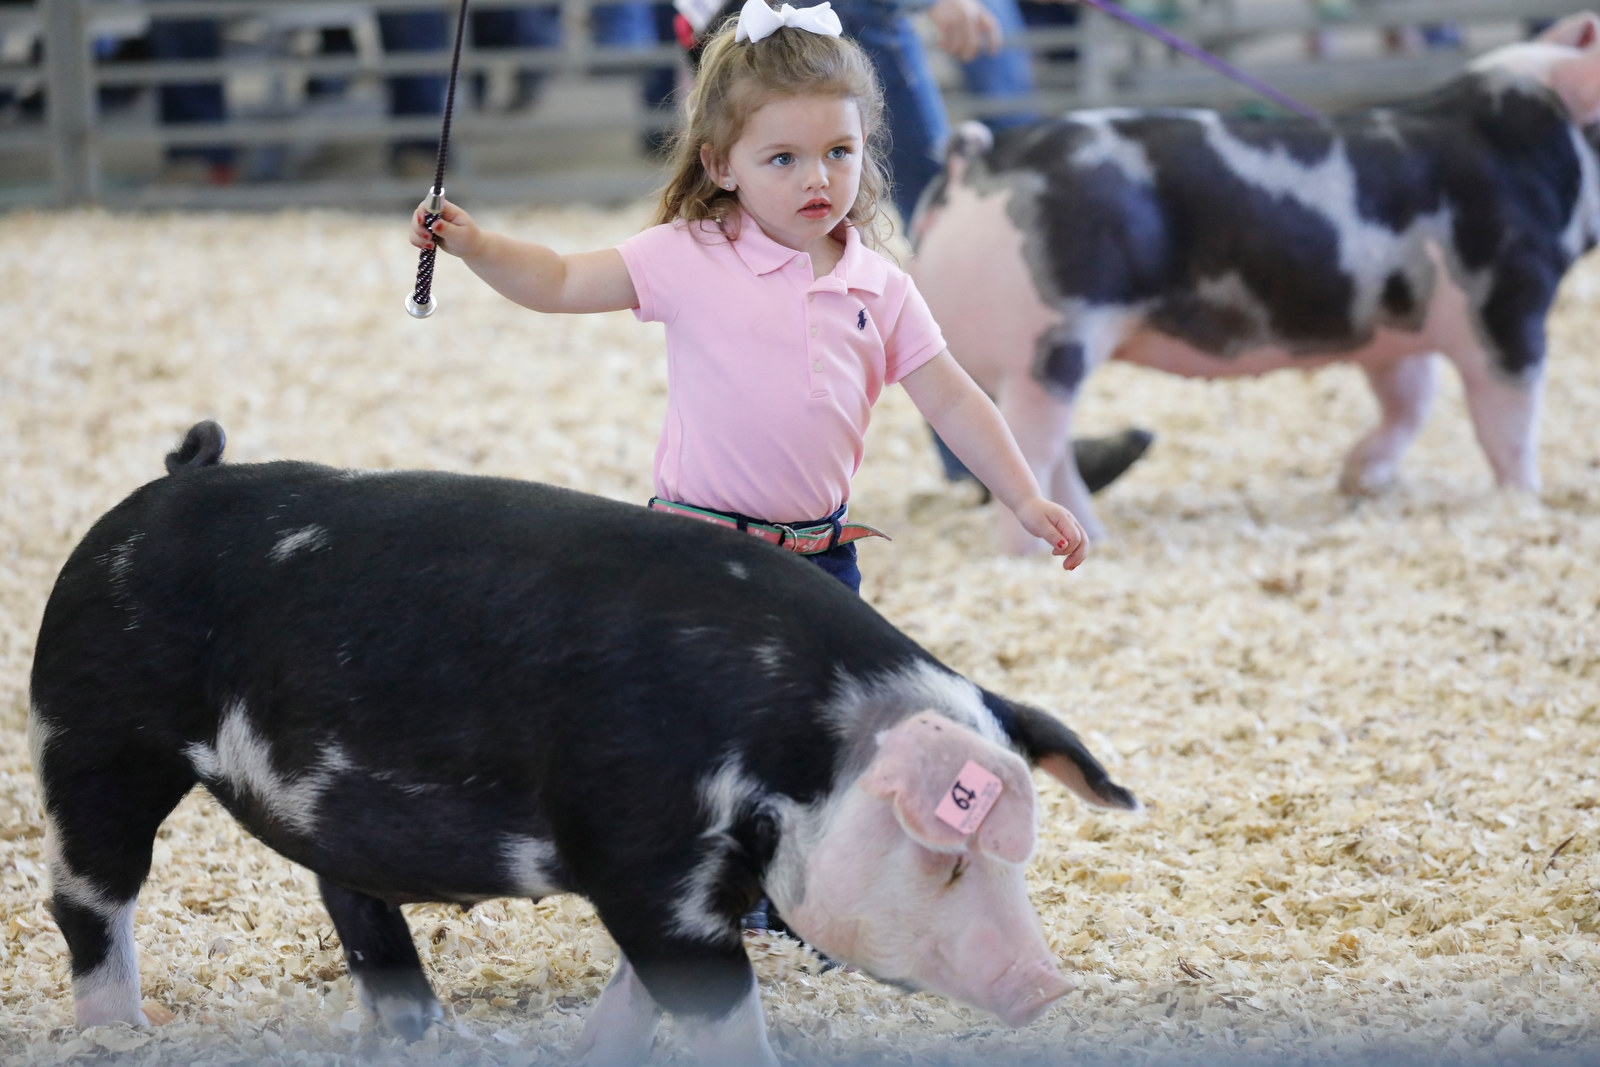 Lyla Kelkenberg, 3, of Clarence guides her pig, Pigaletta, in competition at the 17th annual WNY Hog and Lamb Preview Classic at the Erie County Fairgrounds, Saturday, June 3, 2017.